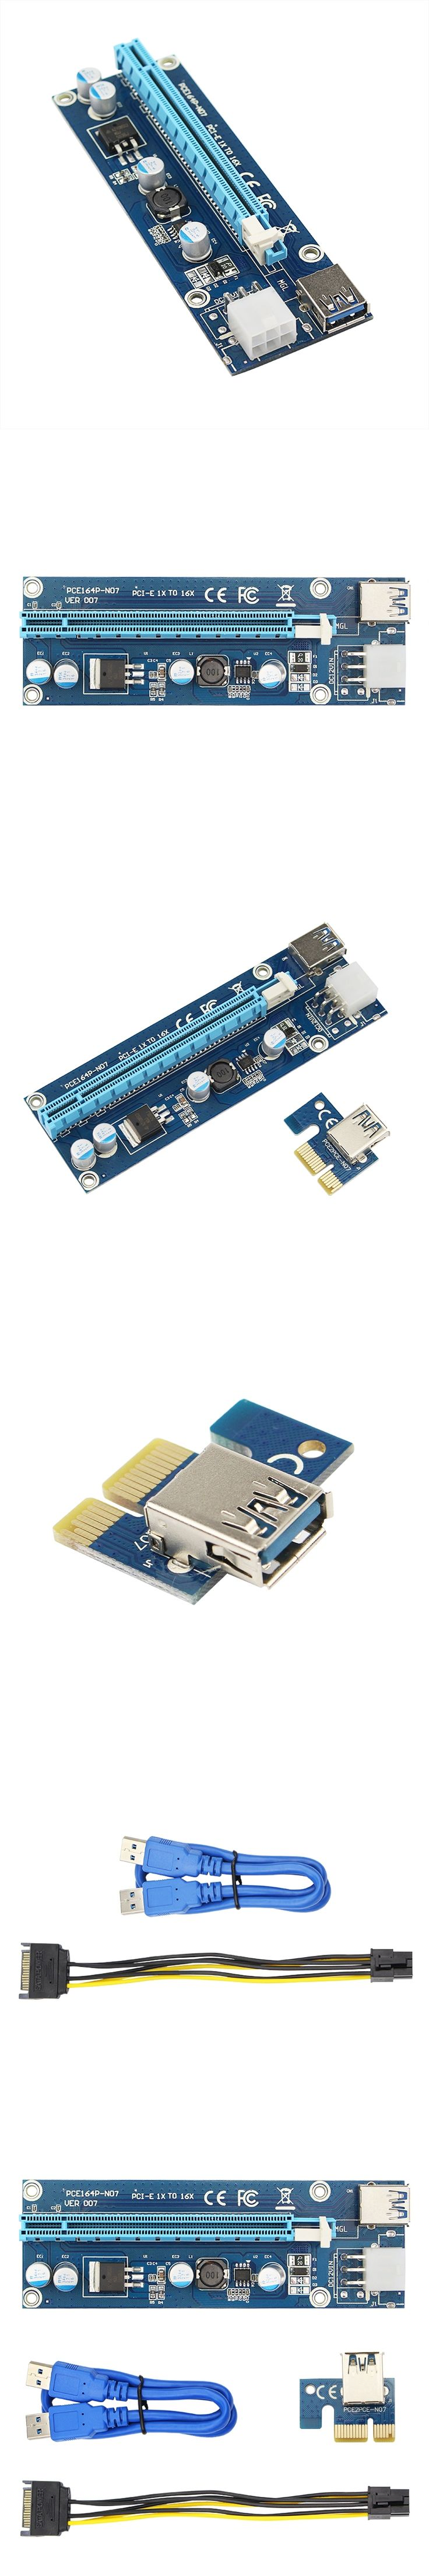 VER006C Blue 1x to 16x PCI Express Riser Card PCI-E Extender 60cm USB 3.0 Cable SATA to 6Pin IDE Power for BTC Miner